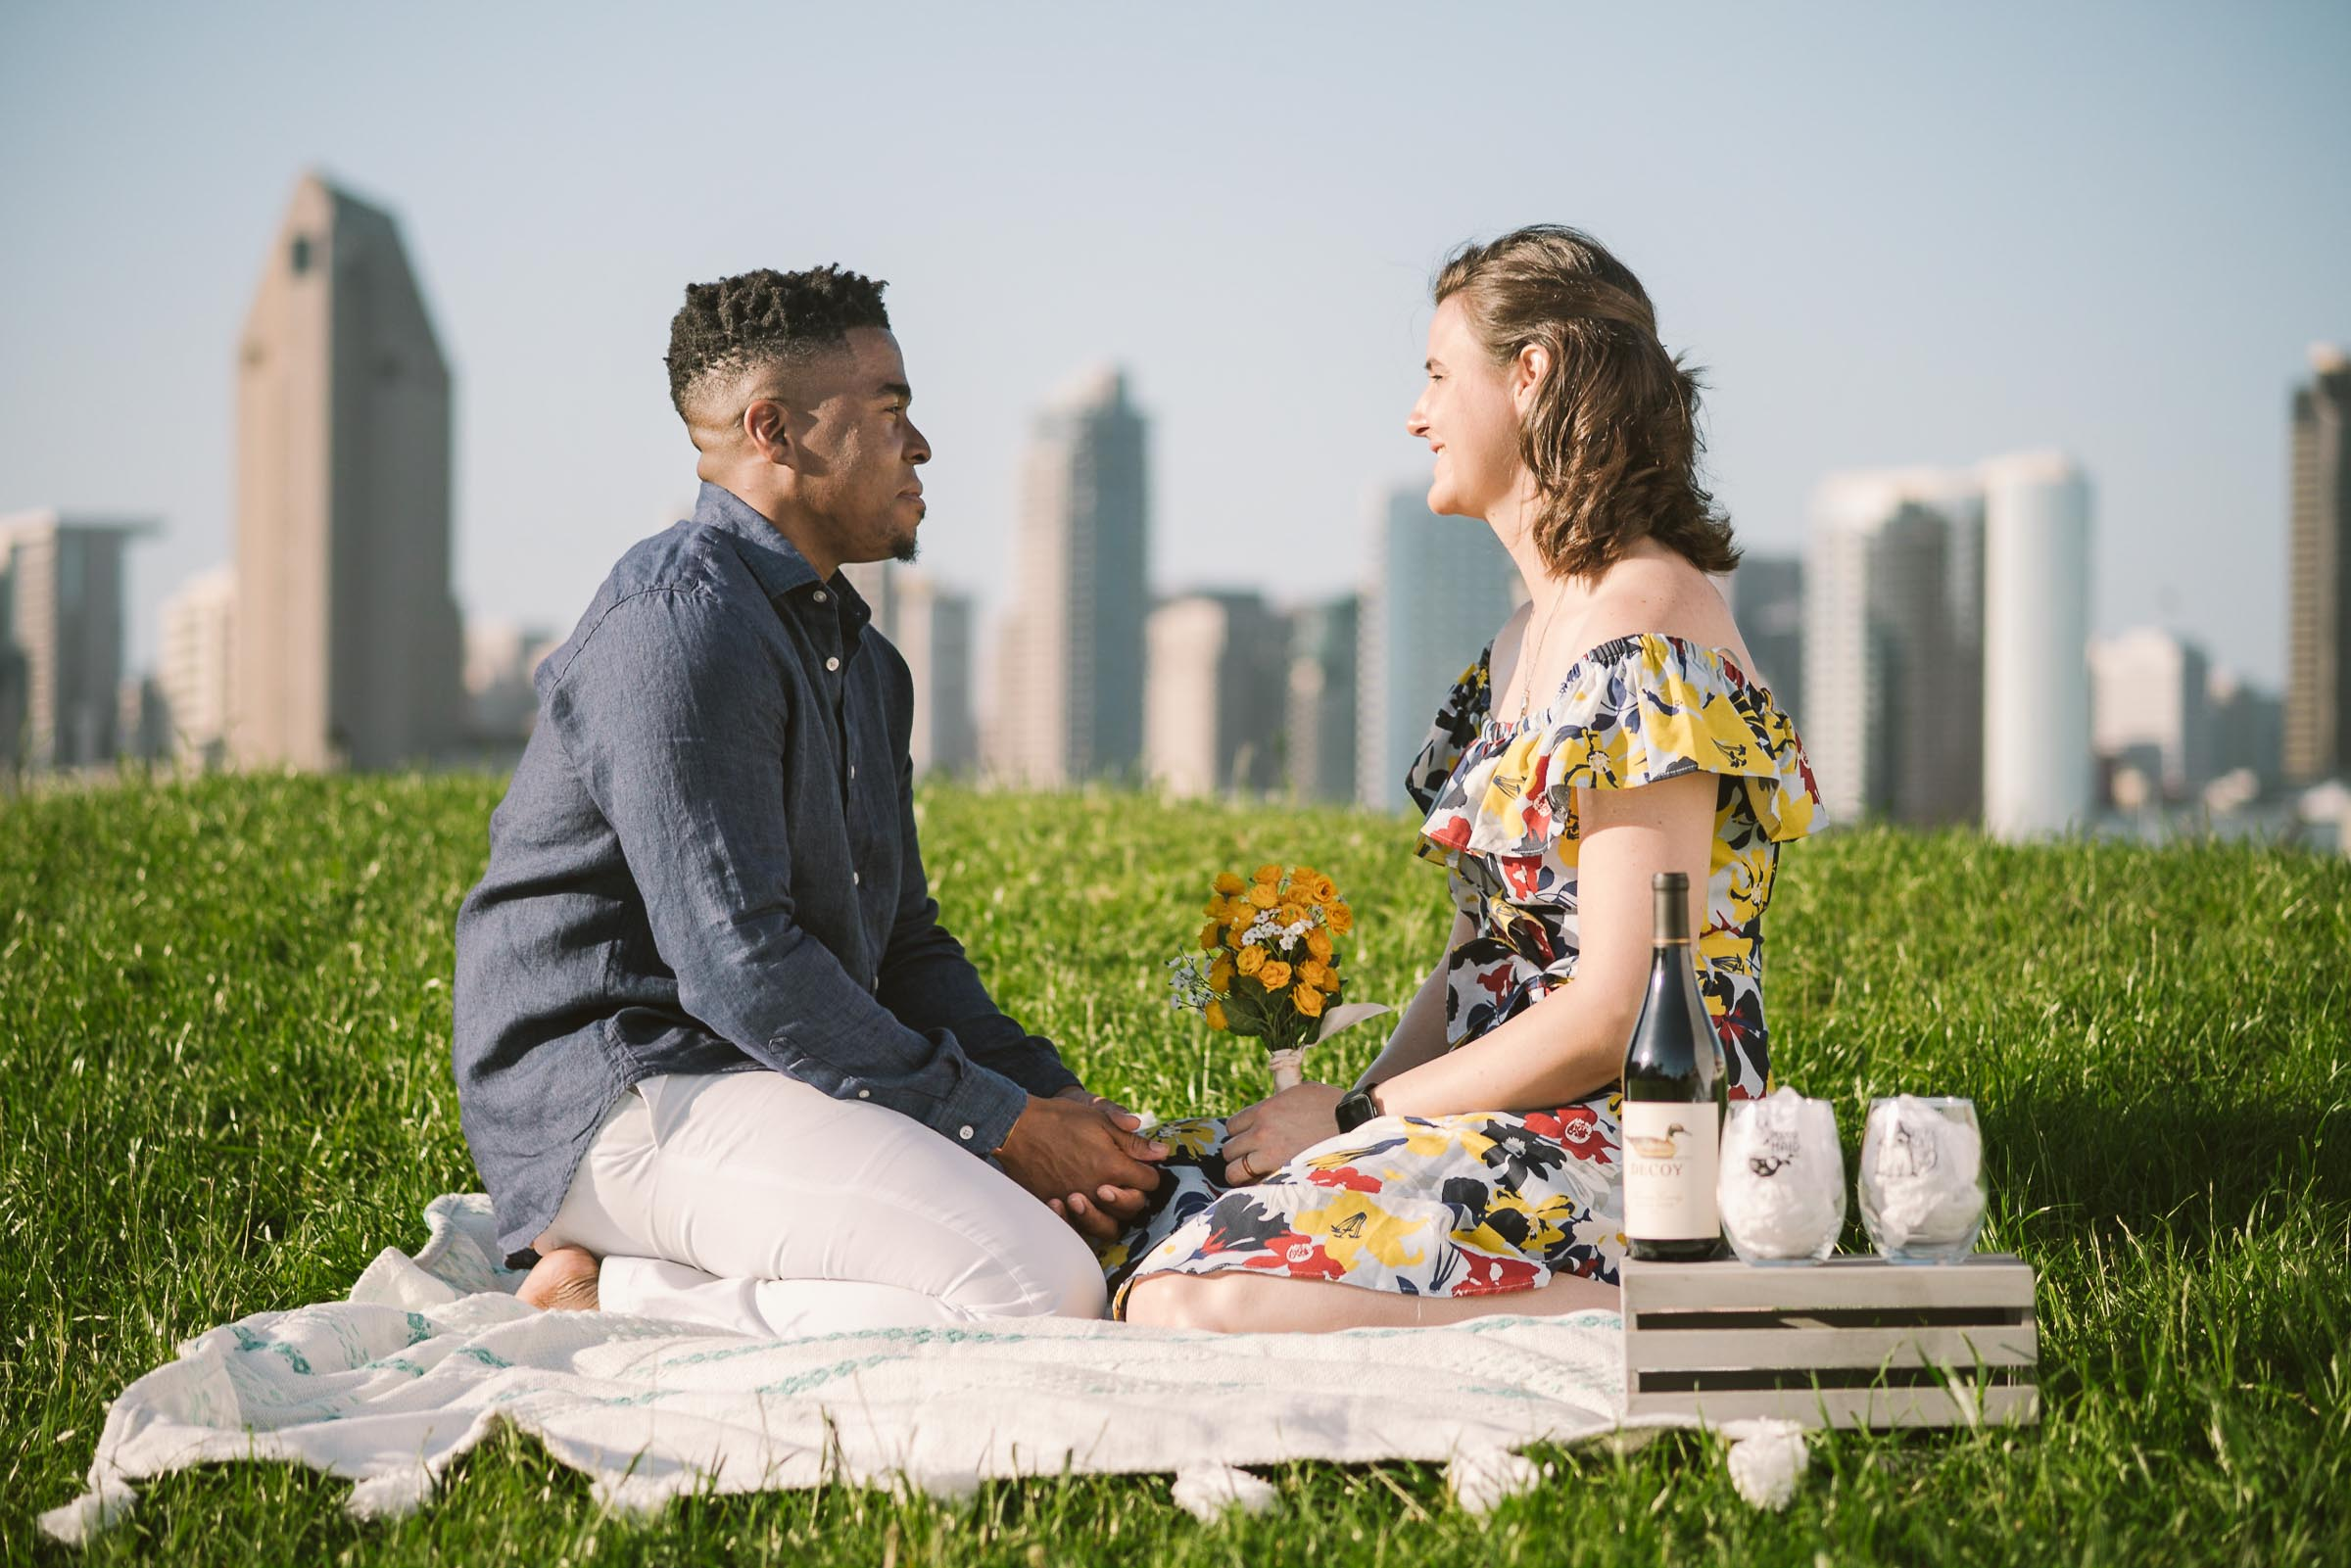 engagement session coronado island picnic san diego skyline california props yellow flowers grass wine glasses